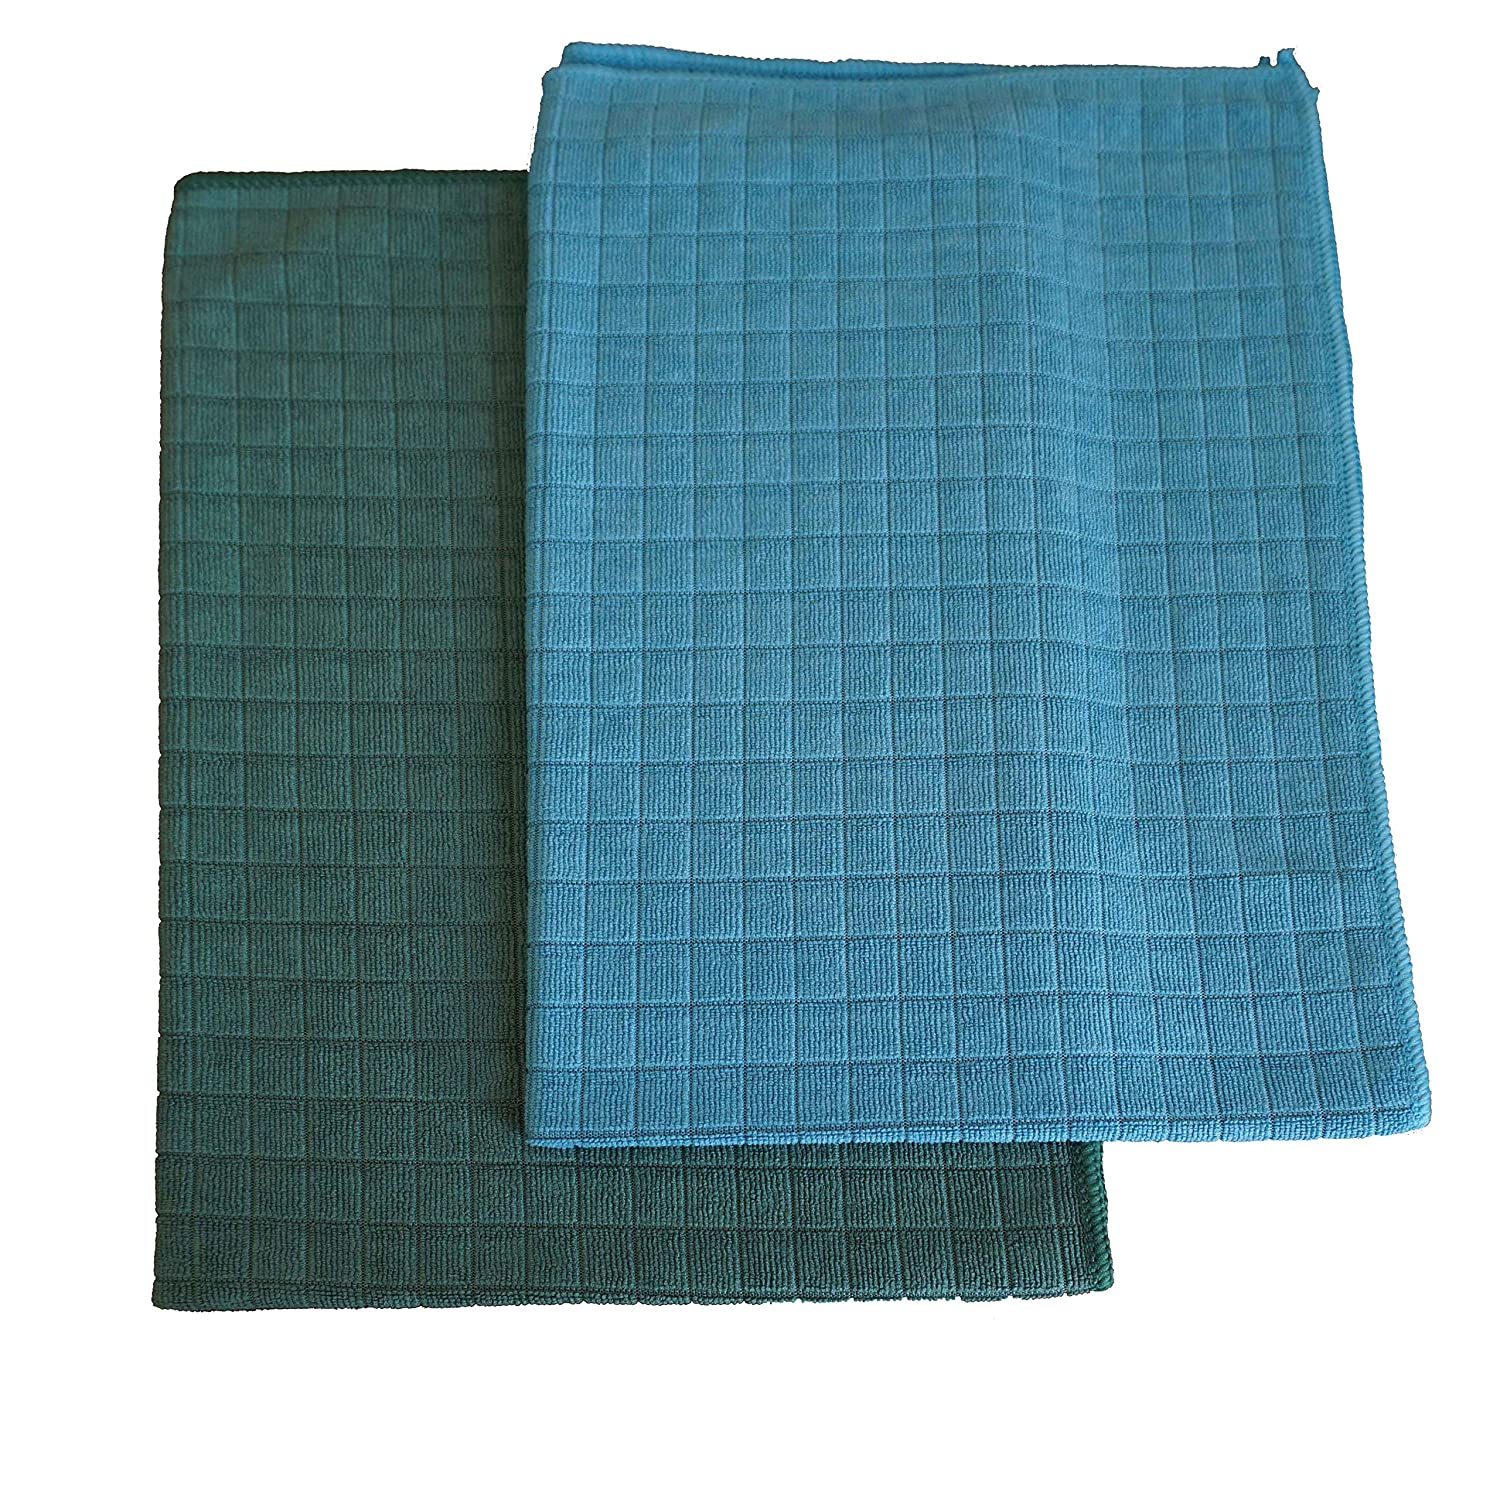 - Soft Grey, Blue, Green, Beige 45 x 65 cm Super Absorbent and Lint Free Kitchen Towels Gryeer Assorted Color Microfibre Tea Towels Pack of 4